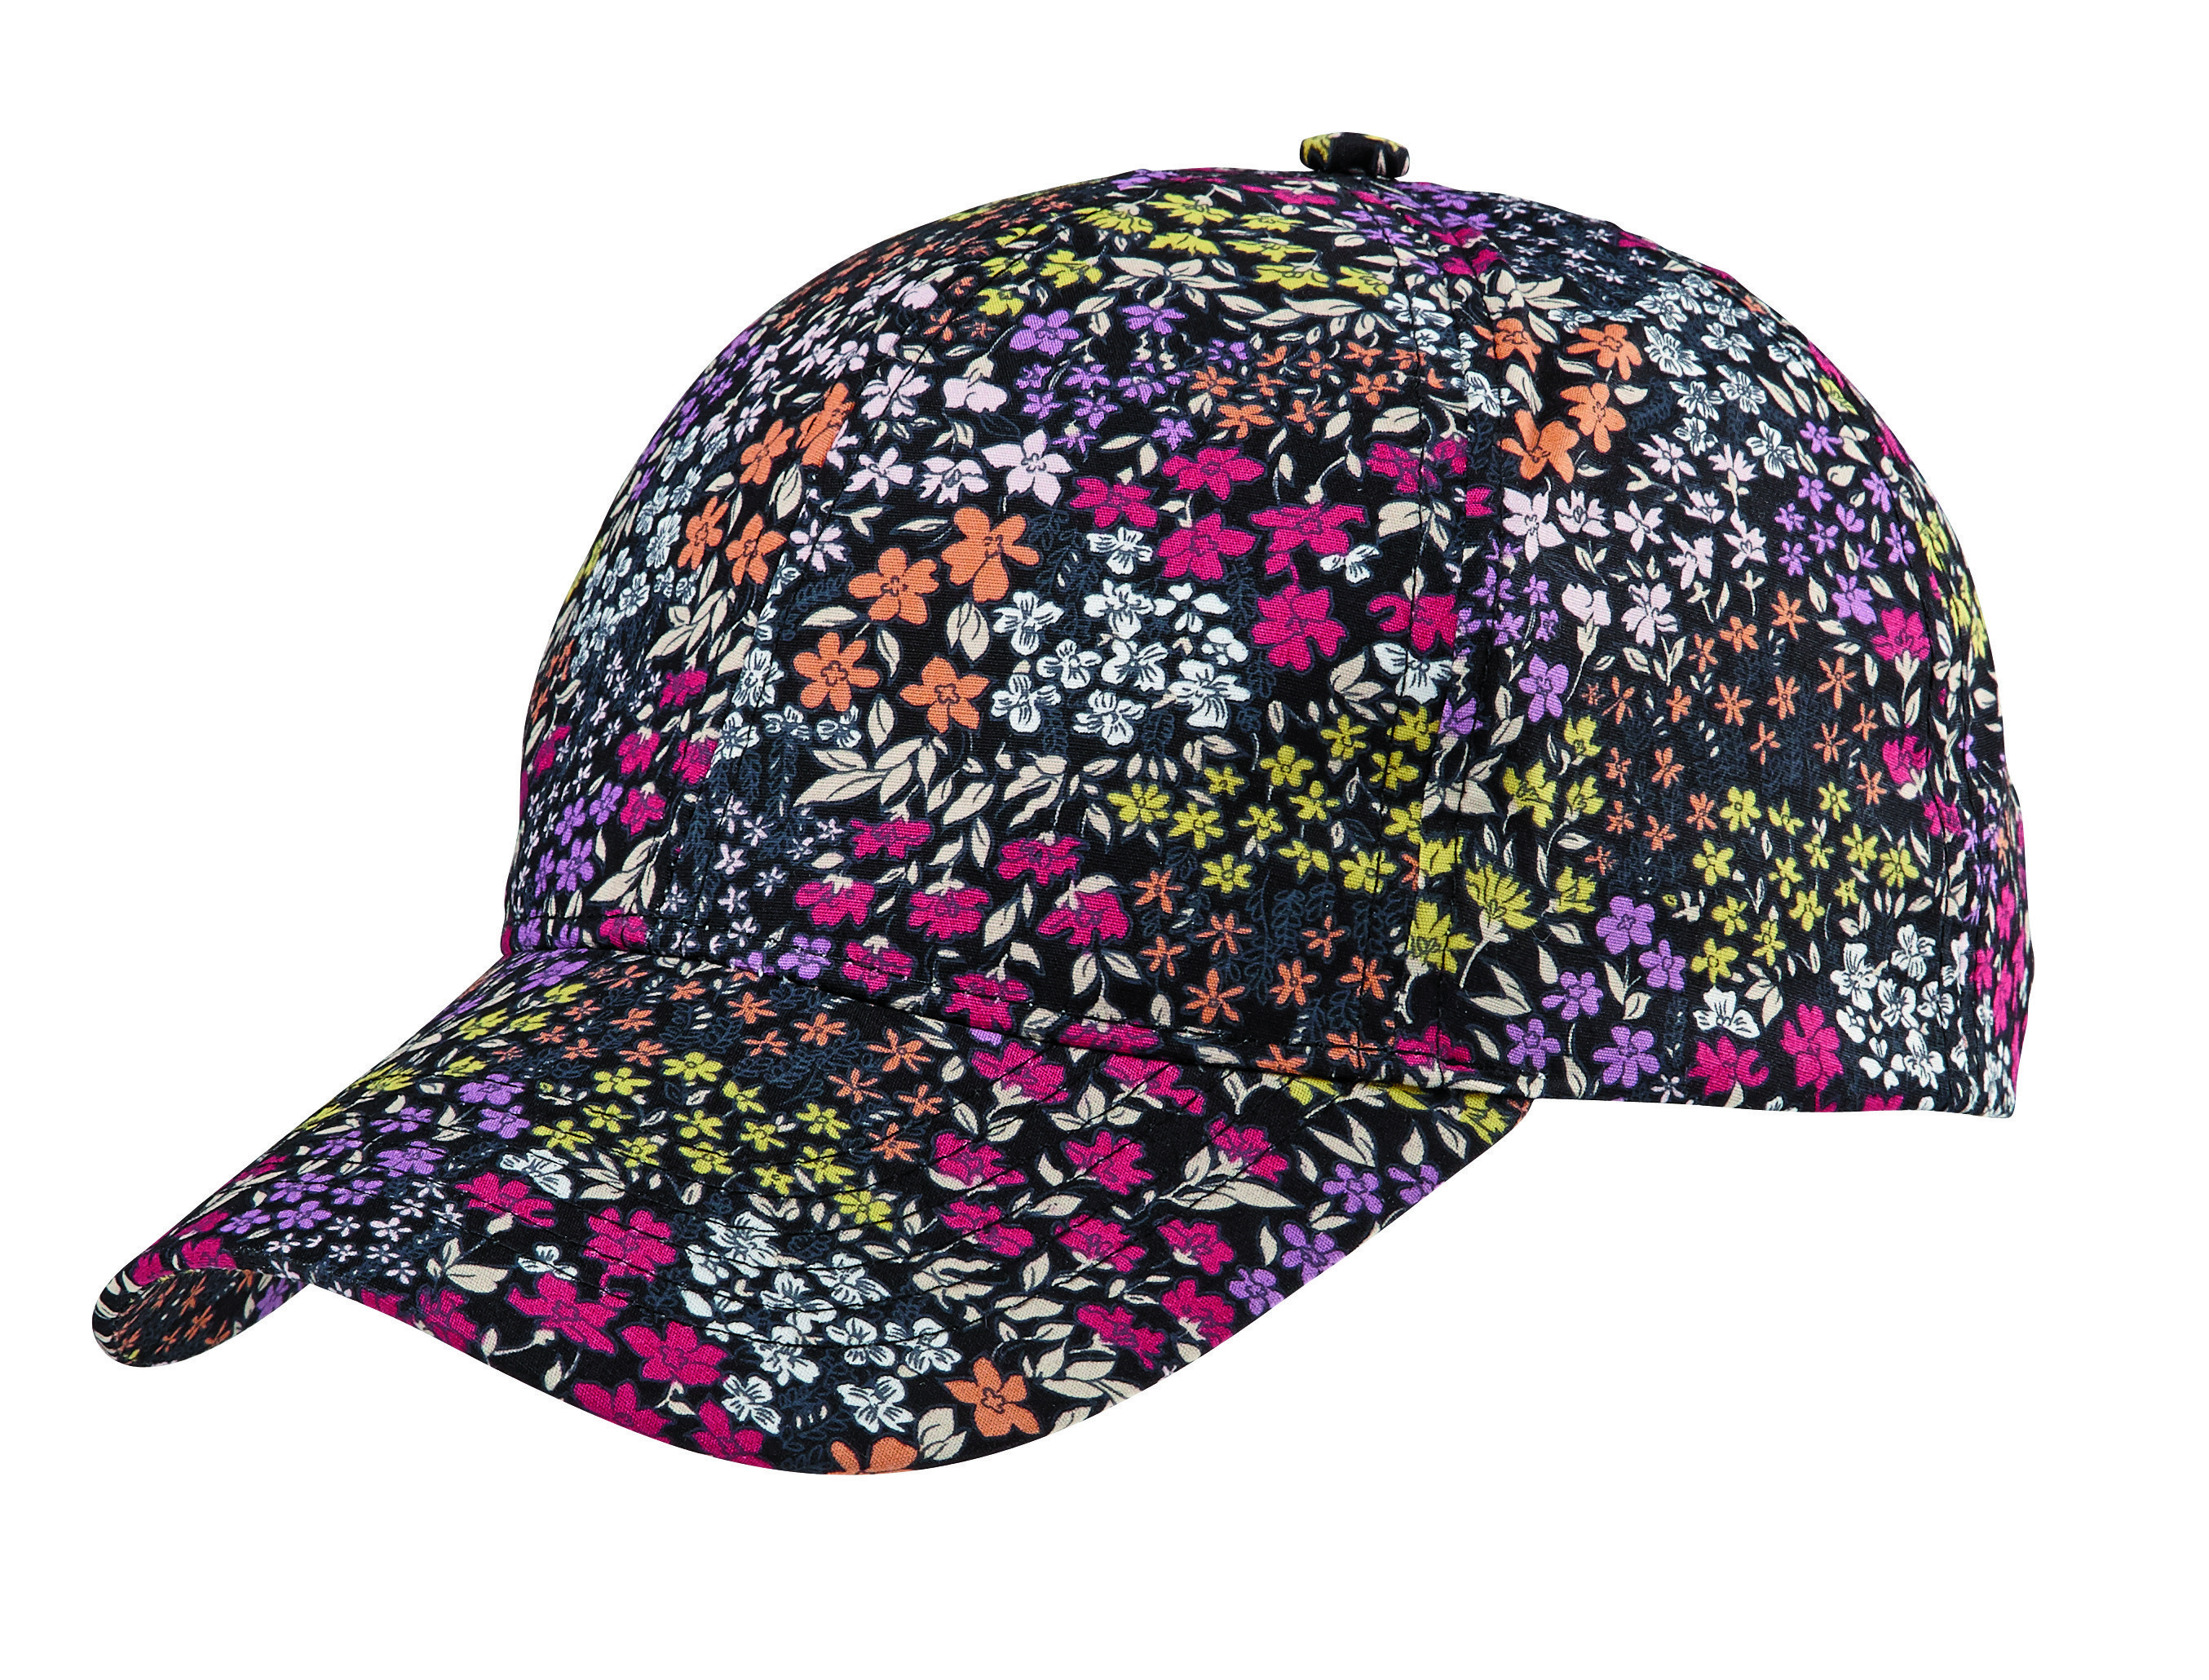 The Warehouse Beach Works Flower Cap $15